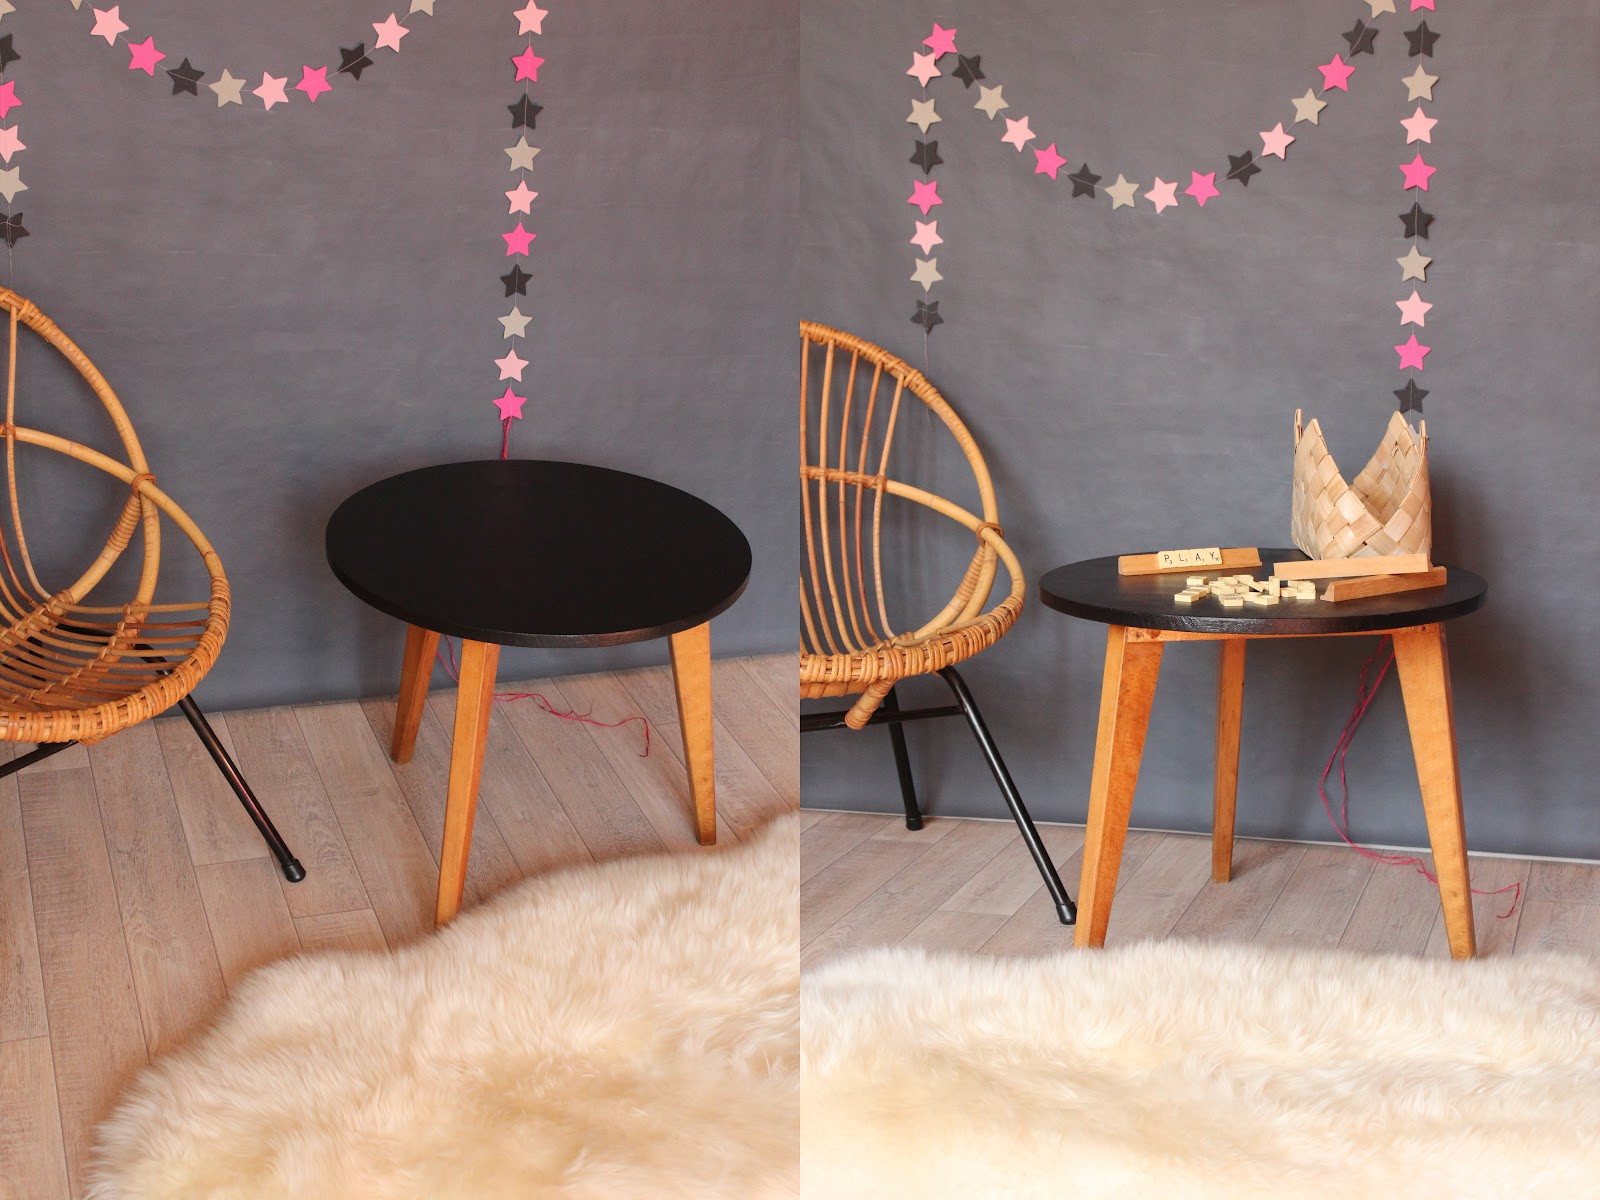 Trendy little mood les shoots de la journ e for Table ronde 52 chimay